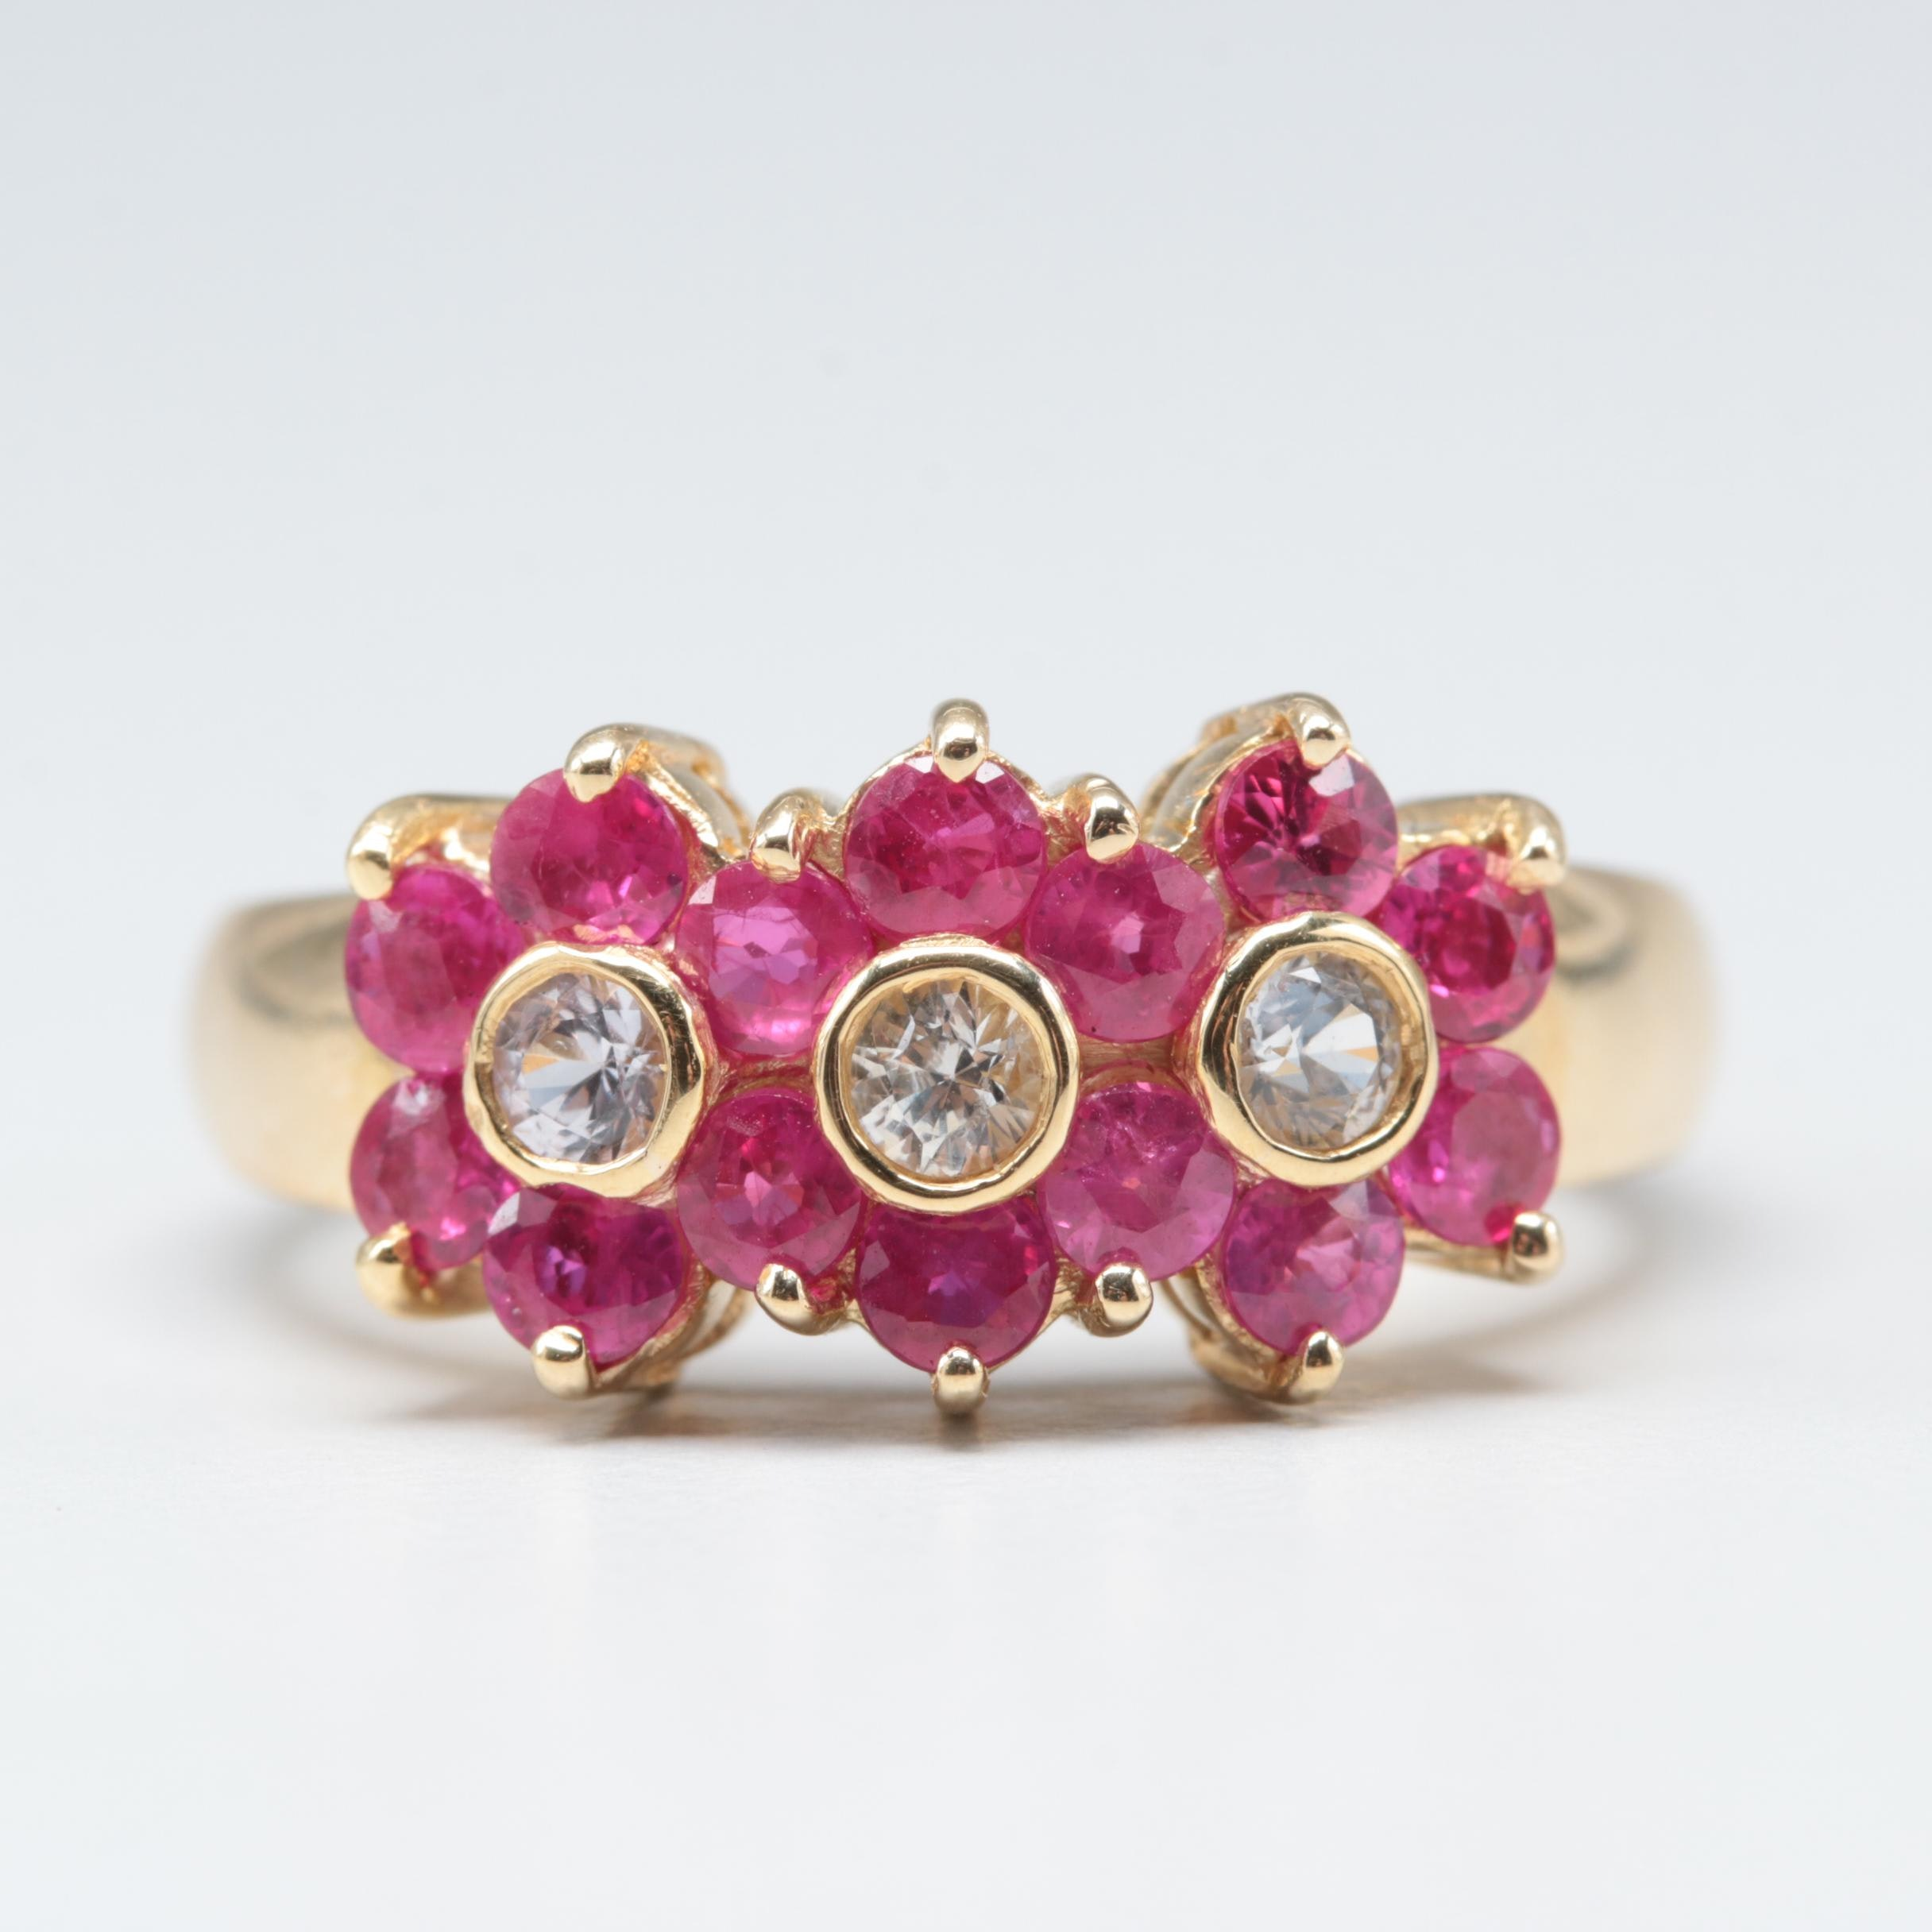 18K Yellow Gold White Sapphire and Ruby Ring